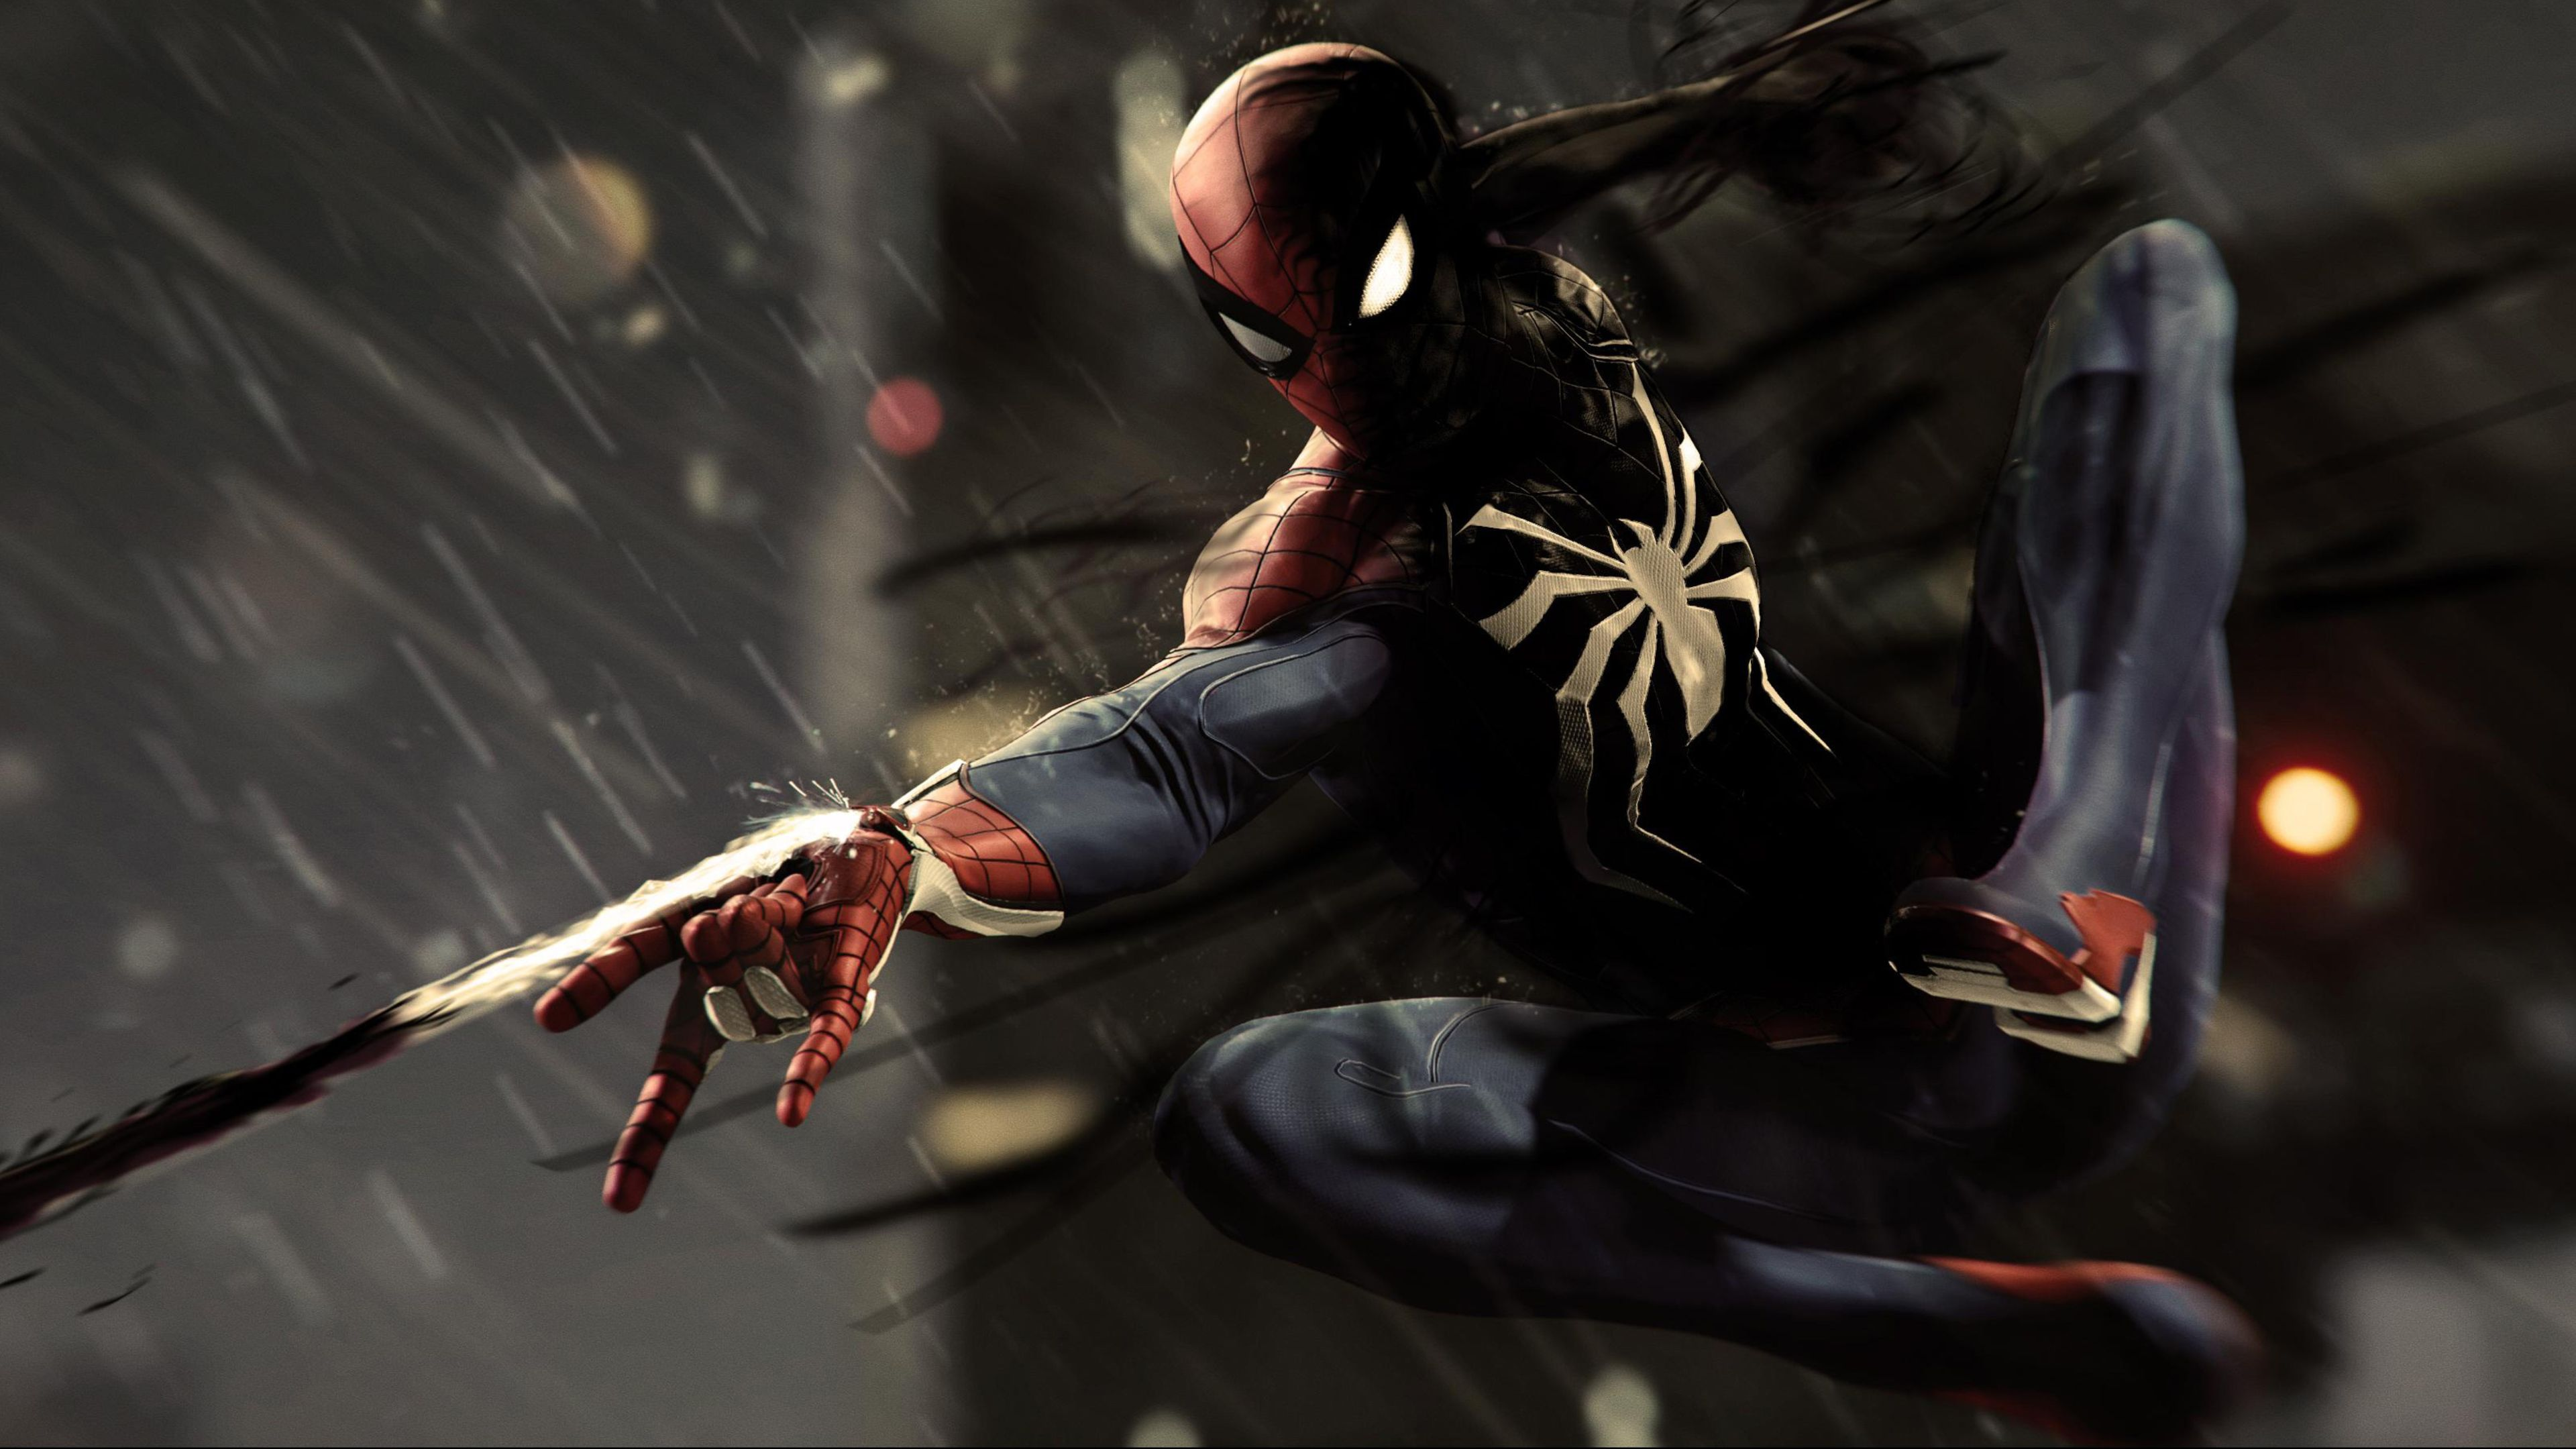 Black Spiderman Ps4 Pro 4k Superheroes Wallpapersreddit Wallpapers Superheroes Wallpapers Spiderman Wallpa Ipad Pro Wallpaper Spiderman Ps4 Android Wallpaper